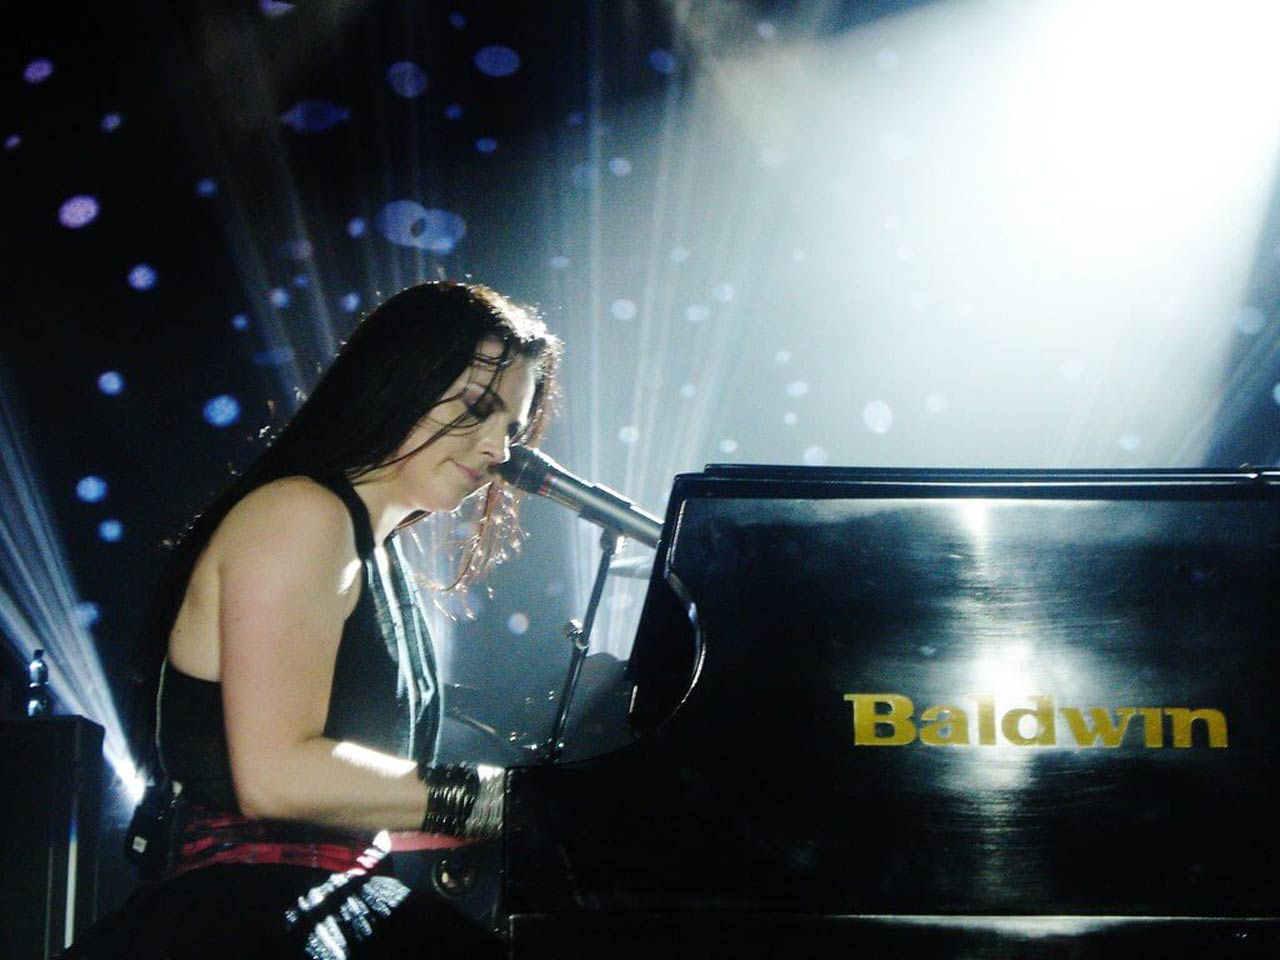 Evanescence vocalist talks about Billie Eilish's voice and songs